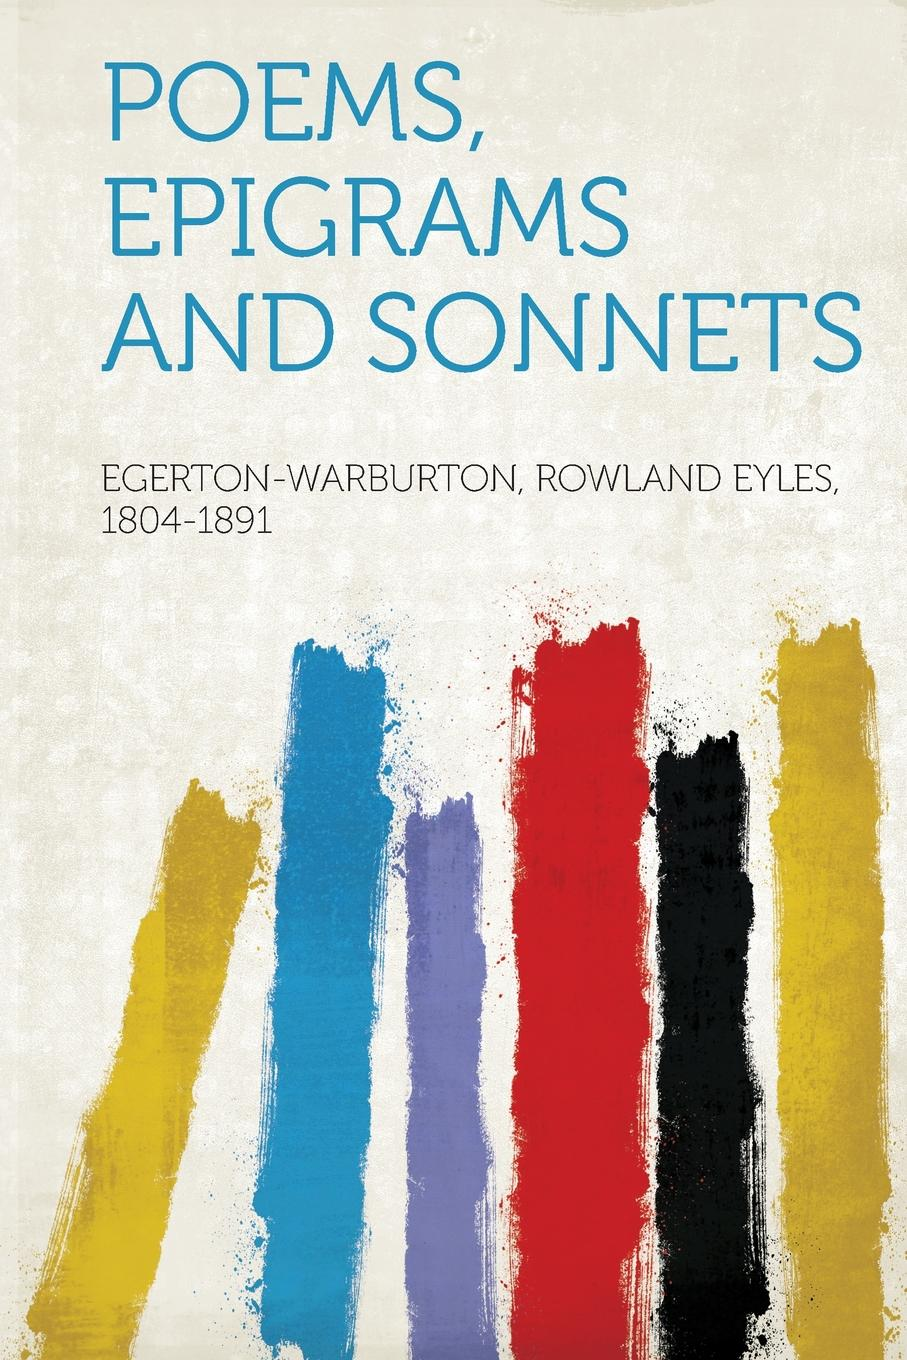 Poems, Epigrams and Sonnets